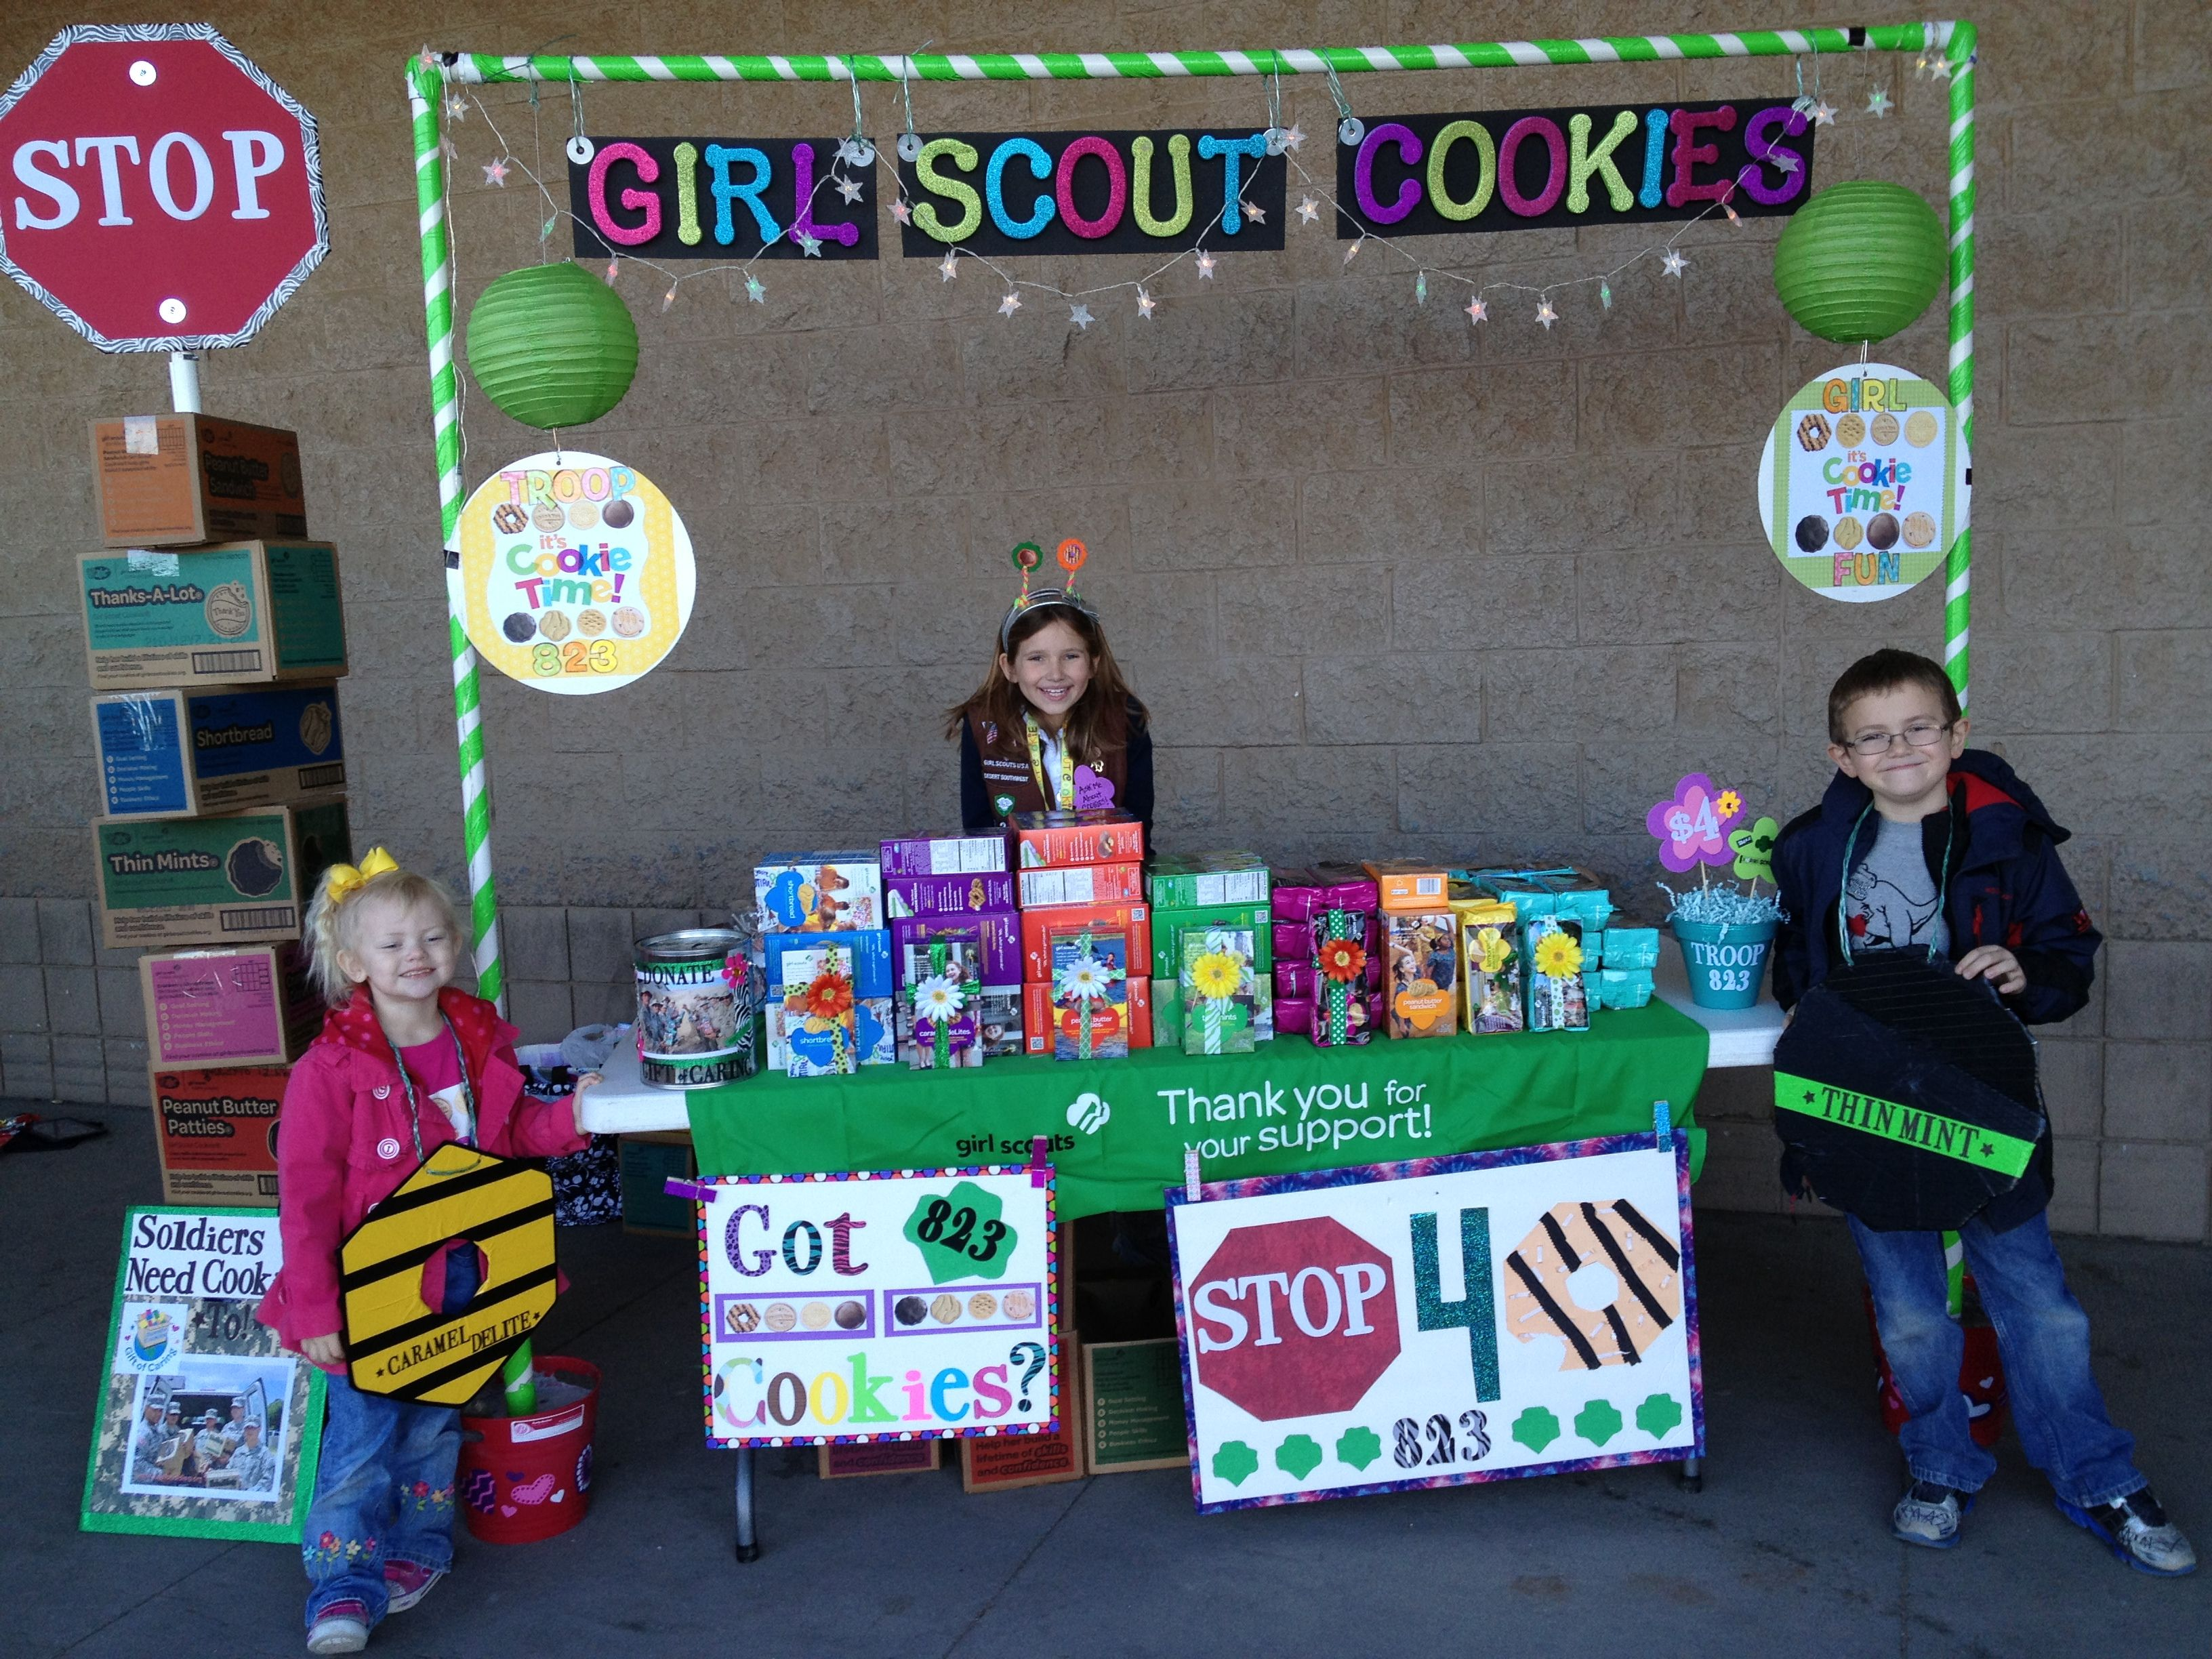 Our Cookie Booth Girl Scouts Pinterest